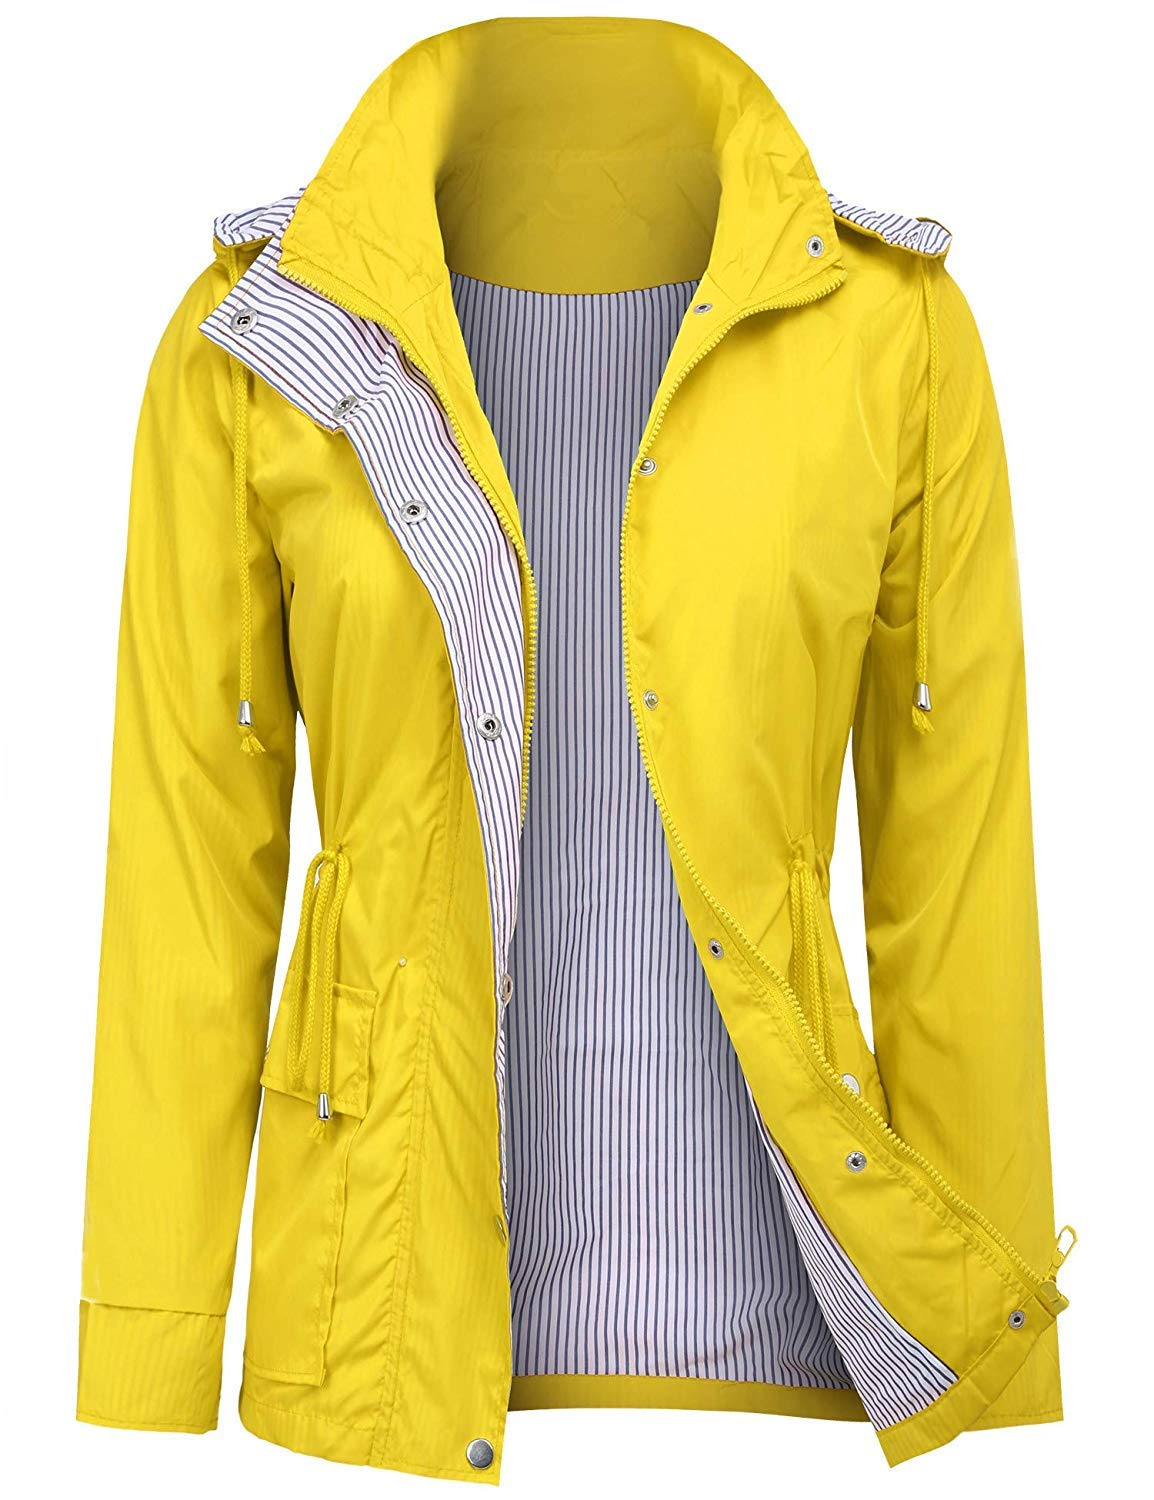 UUANG Women's Military Jacket Rain Repellent Water-Resistant Trench with Hood (Yellow,M) by UUANG